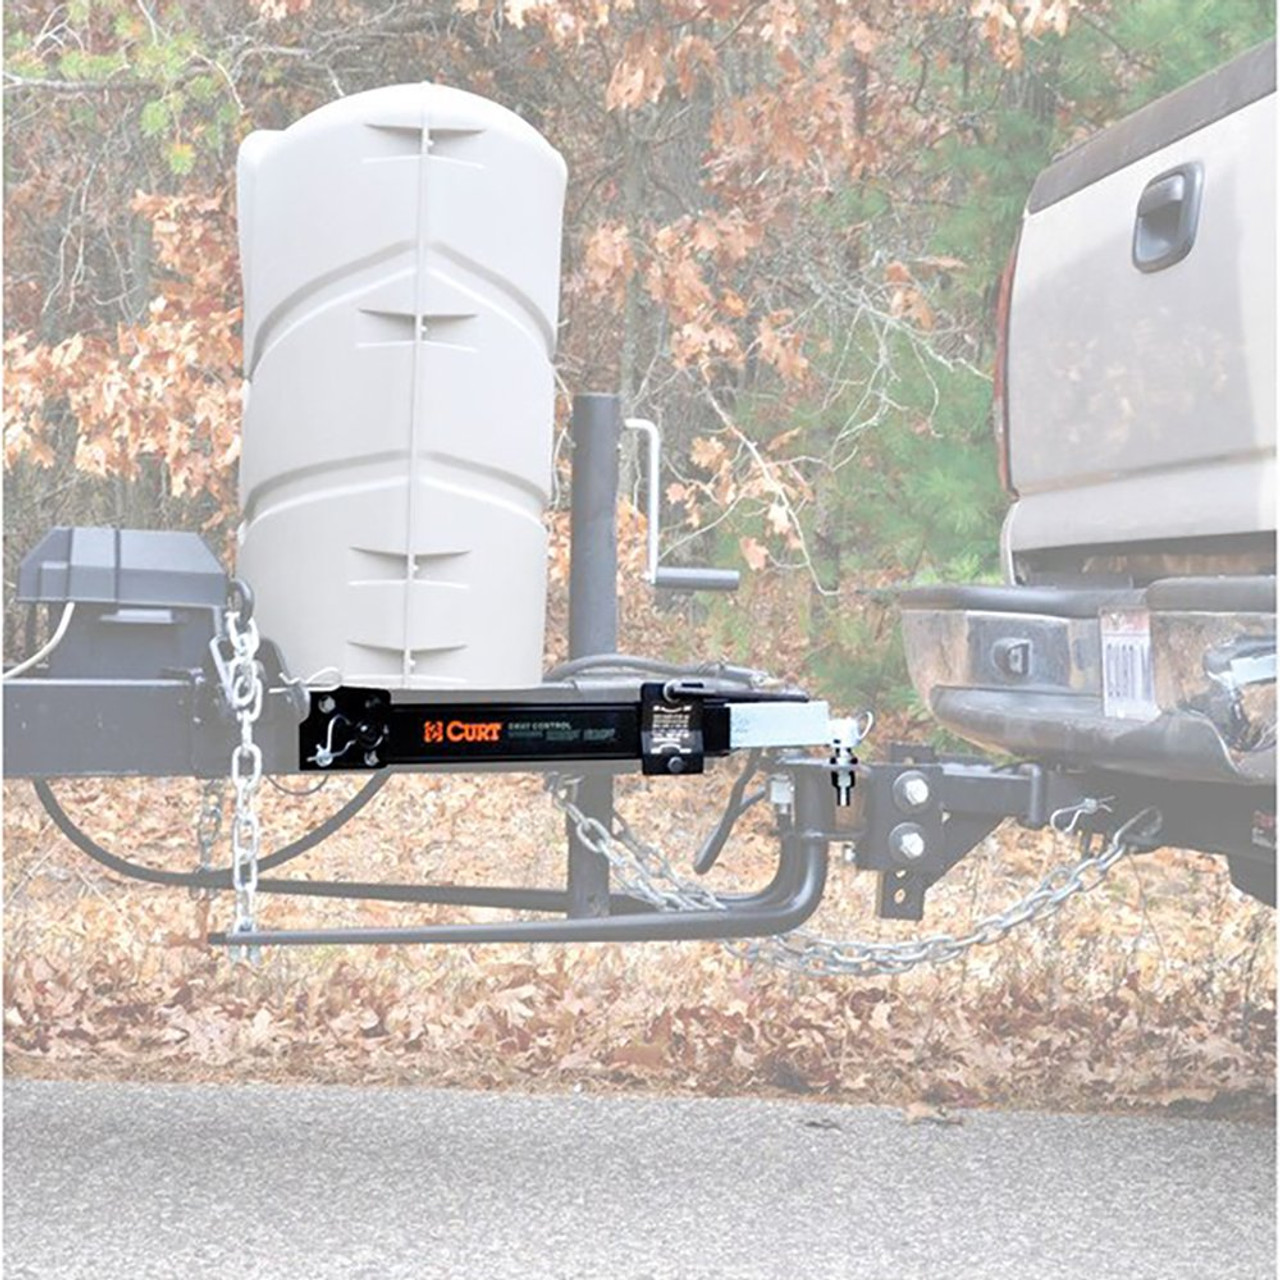 Sway Control Kit- Reduces the Lateral Movements of the Trailer Caused By Wind